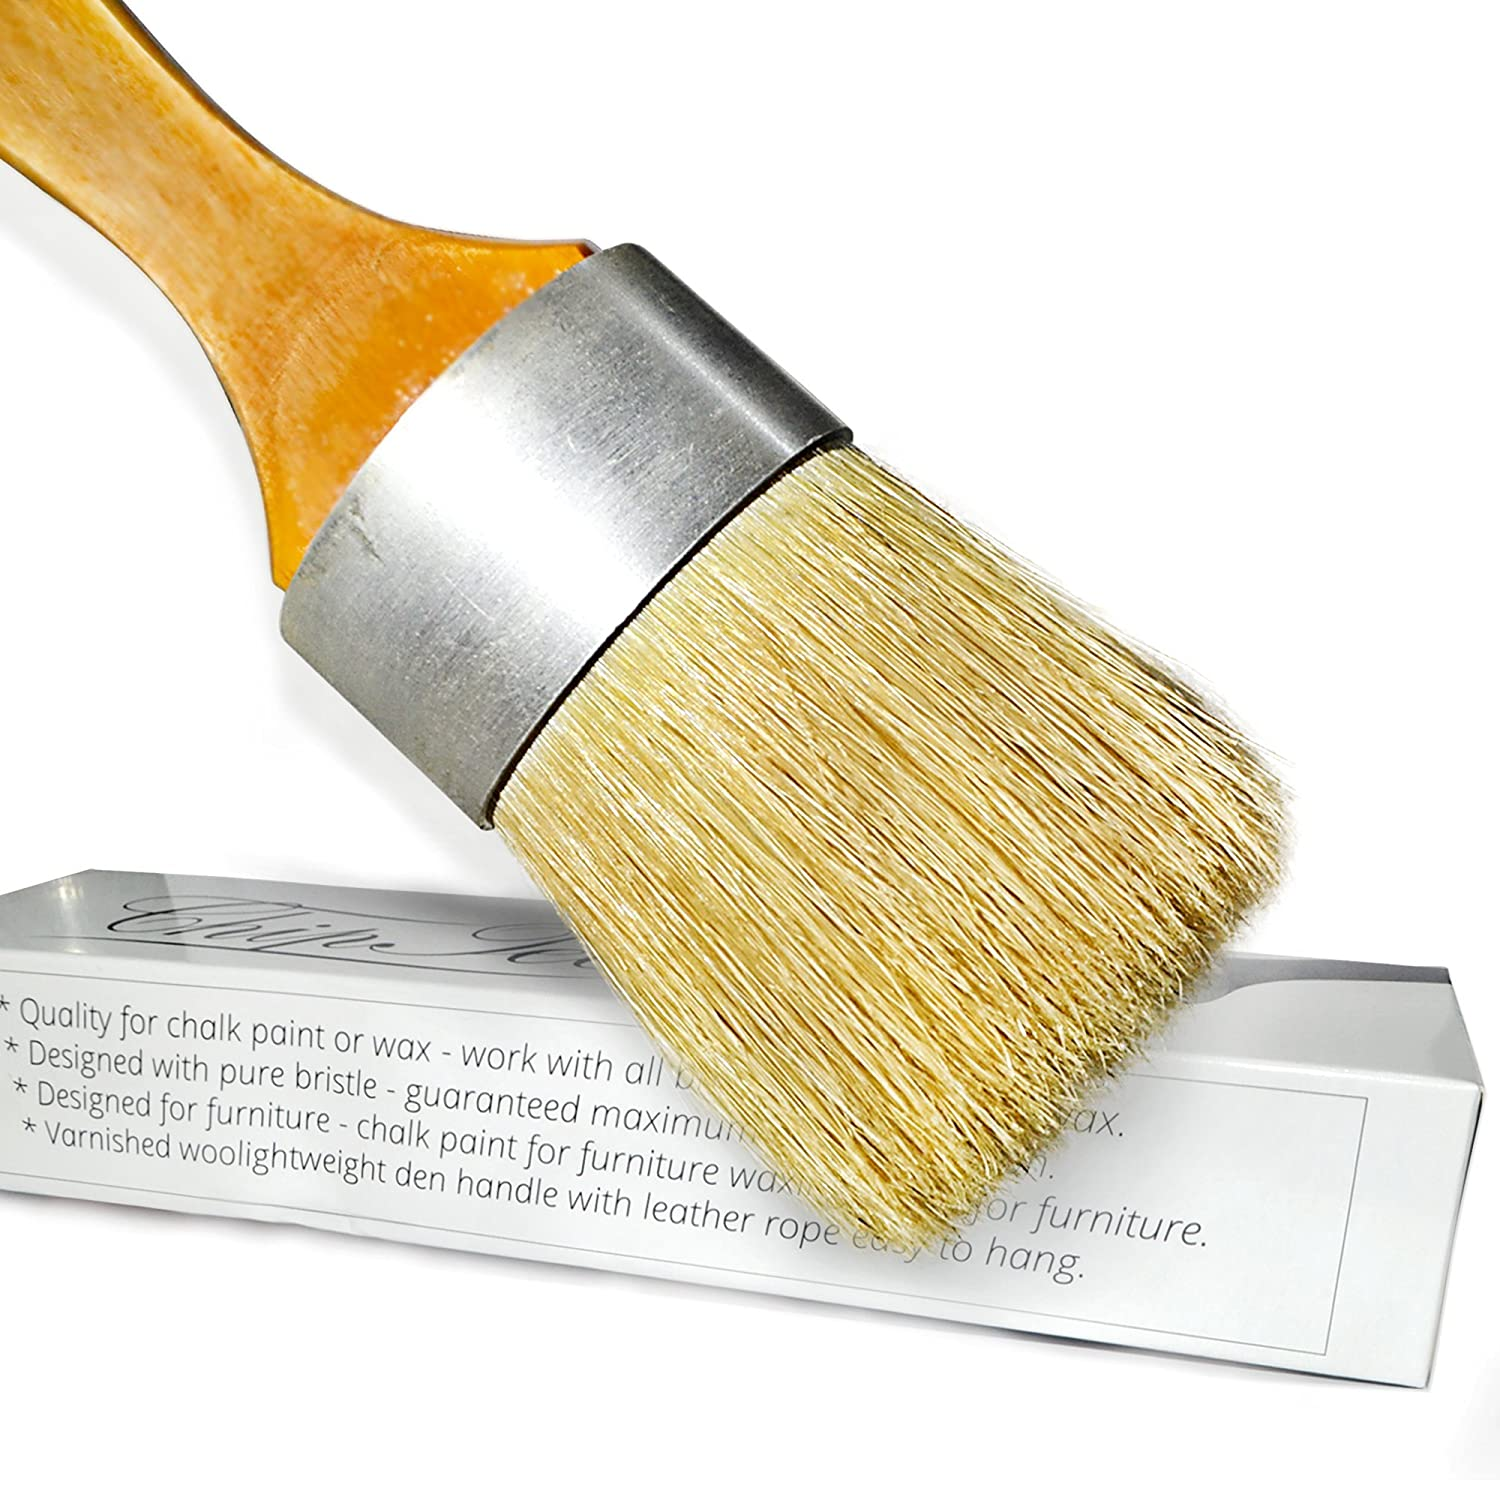 ChipTee Chalk Paint Wax Brush - Natural Bristle Brush - Good for Painting Furniture - Strong and Flexible Oval Brush - Perfect with Annie Sloan Chalk Paint - Comes with Leather Rope for Easy Hanging